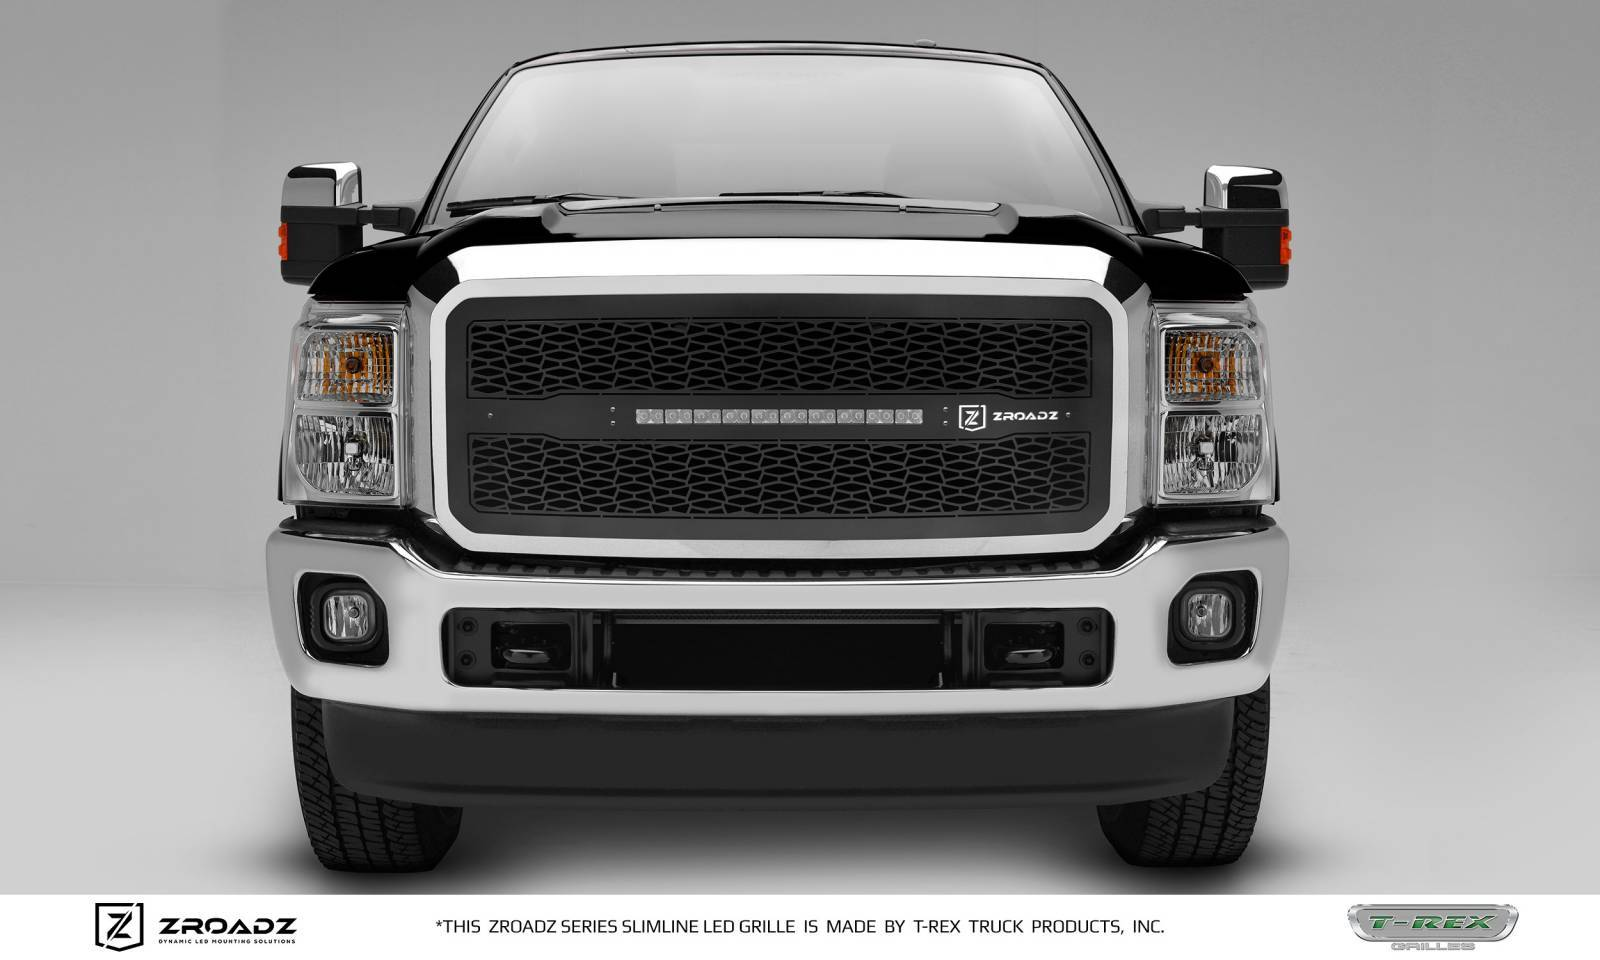 T-REX Grilles - Ford F250 / F350 Super Duty - ZROADZ Series - Main Insert - Grille w/ One 20 Inch Slim Line Single Row LED Light Bar - Part# Z315461